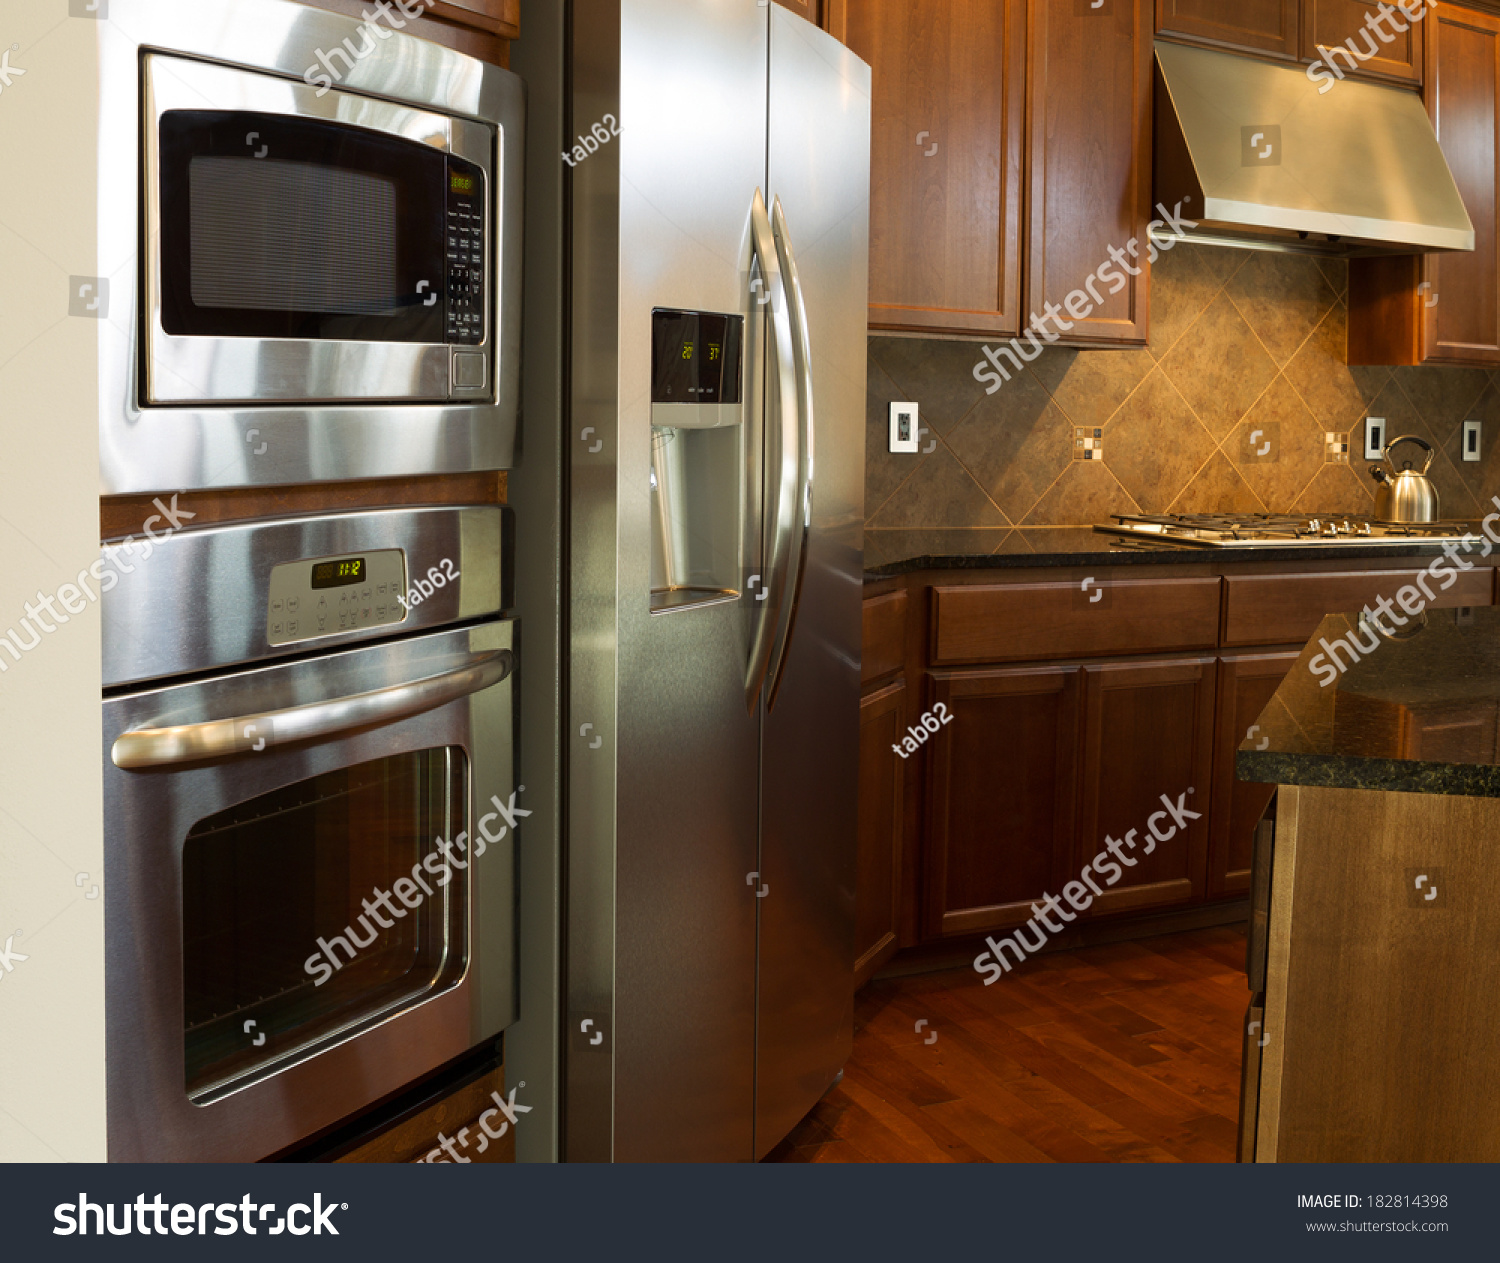 Stainless Steel Kitchen Cabinets With Oven: Closeup Photo Stainless Steel Appliances Modern Stock